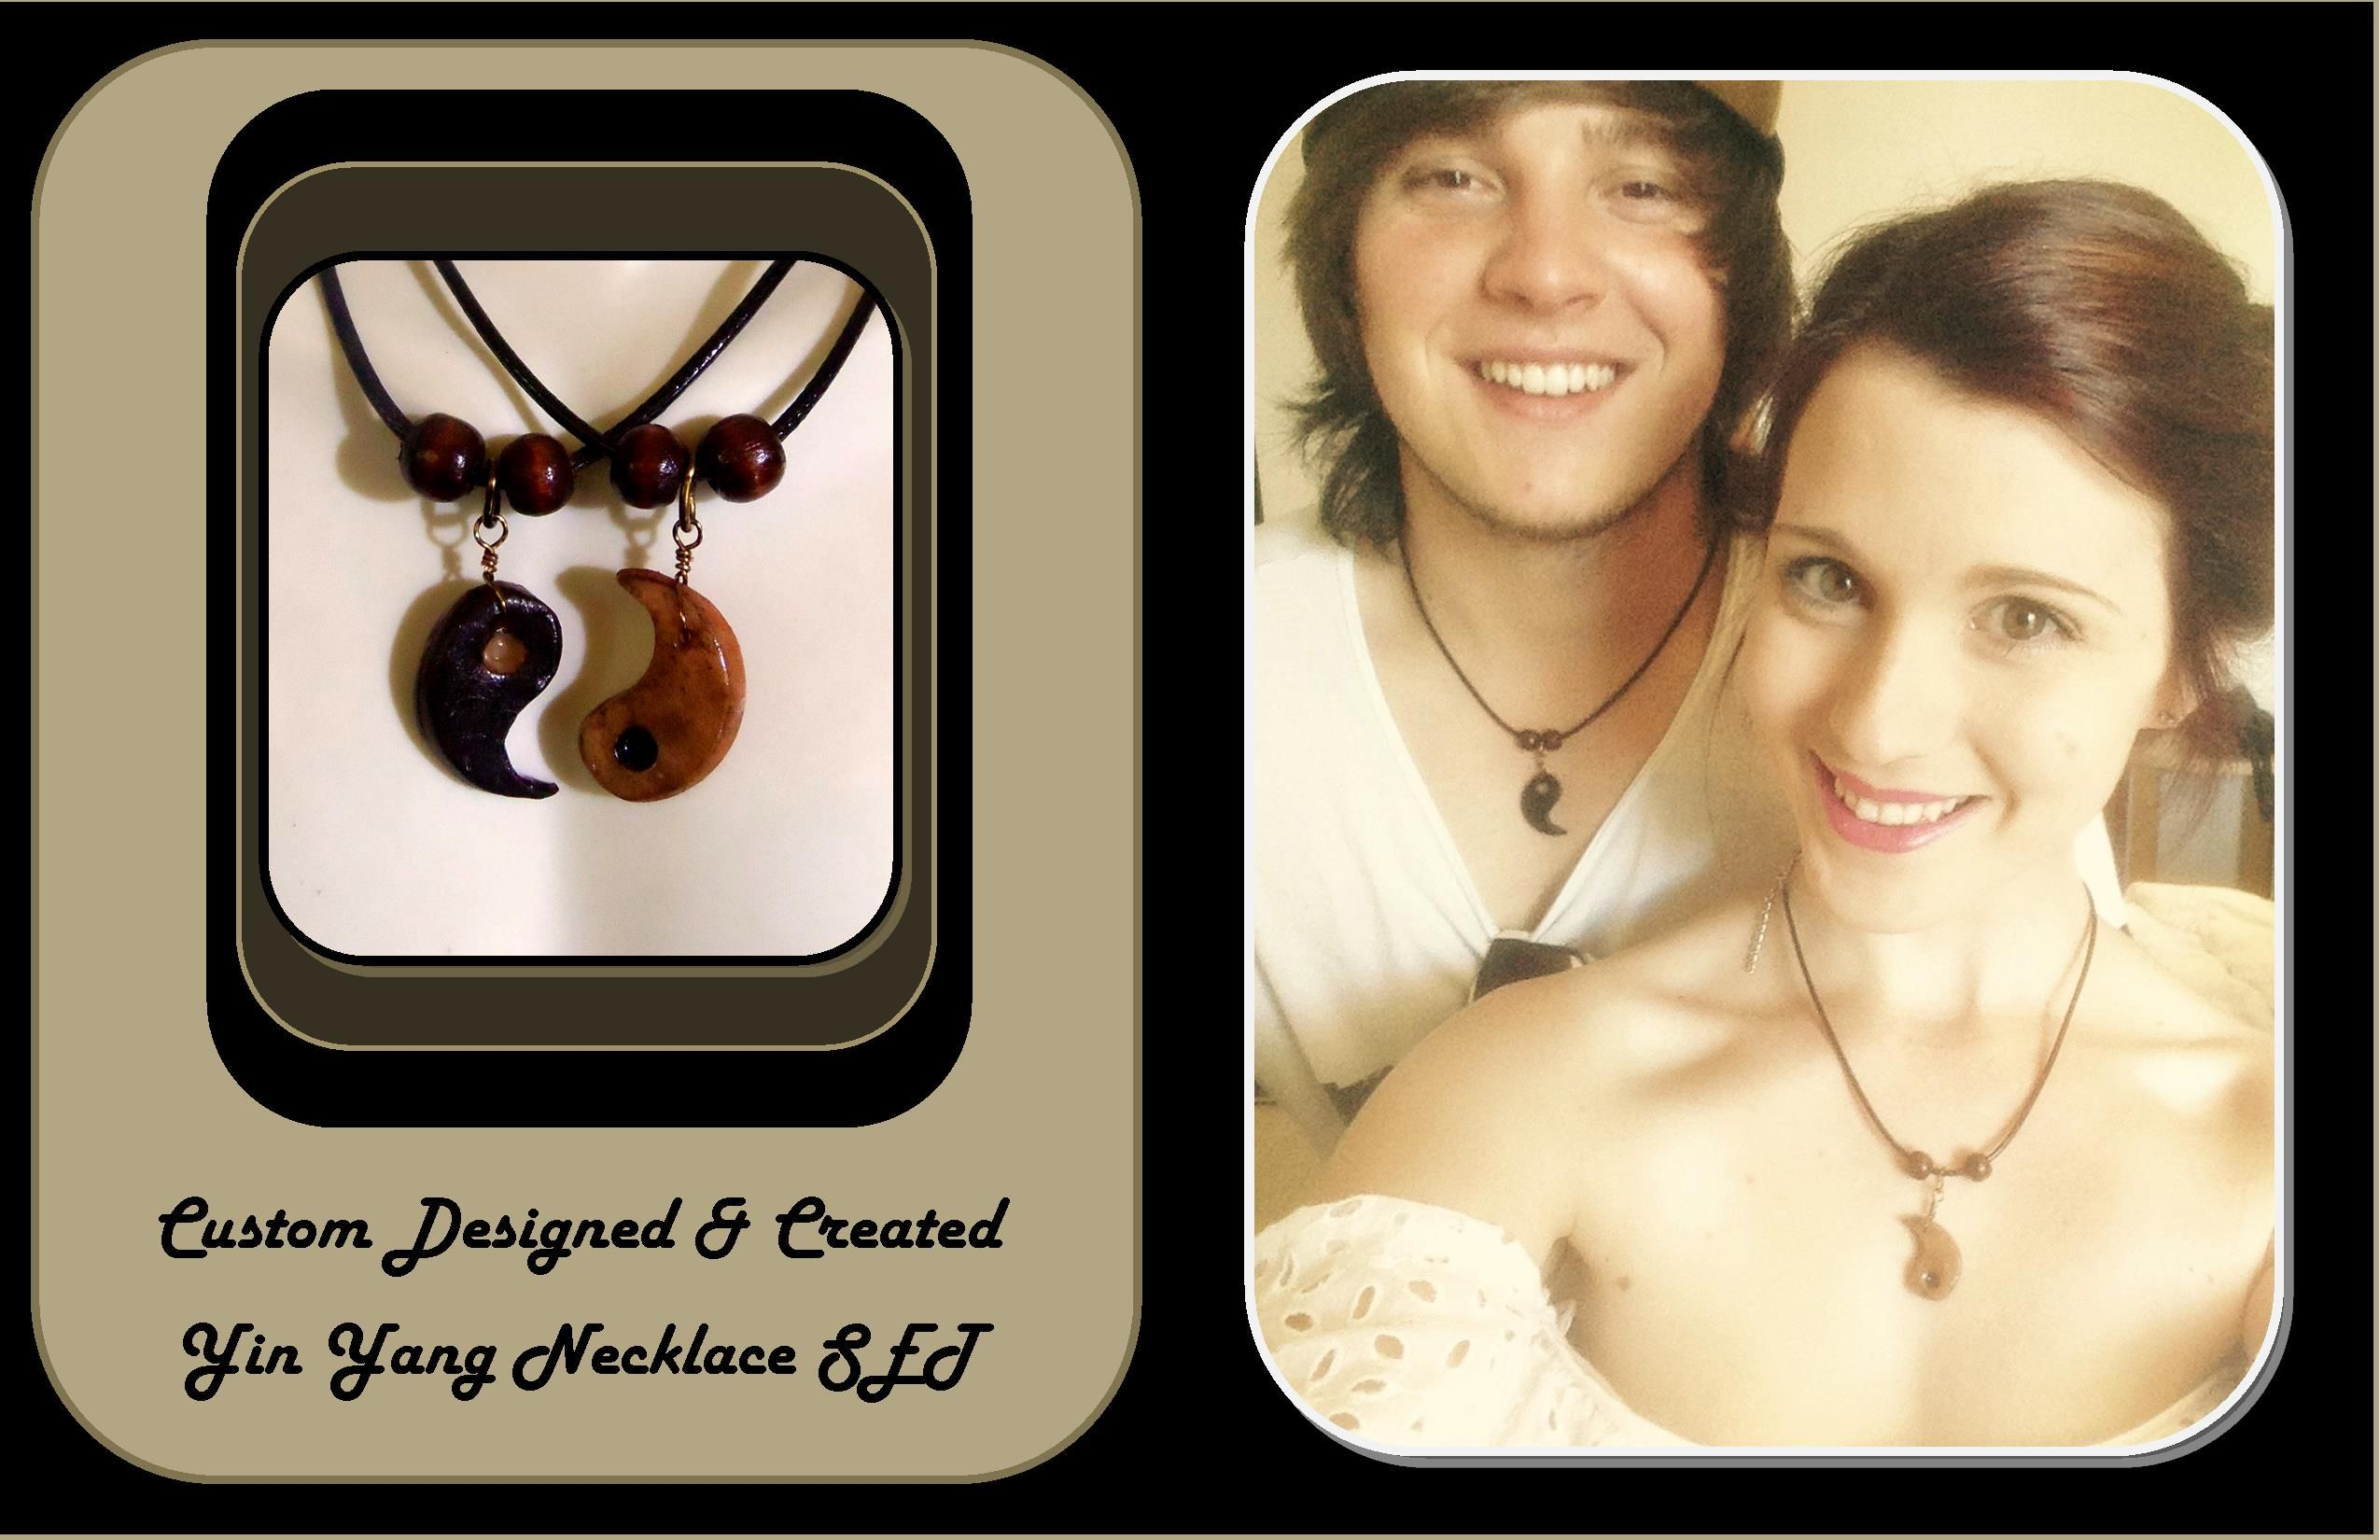 Buy A Handmade His Hers Jewelrycouples Jewelrymens Giftsyin Yang